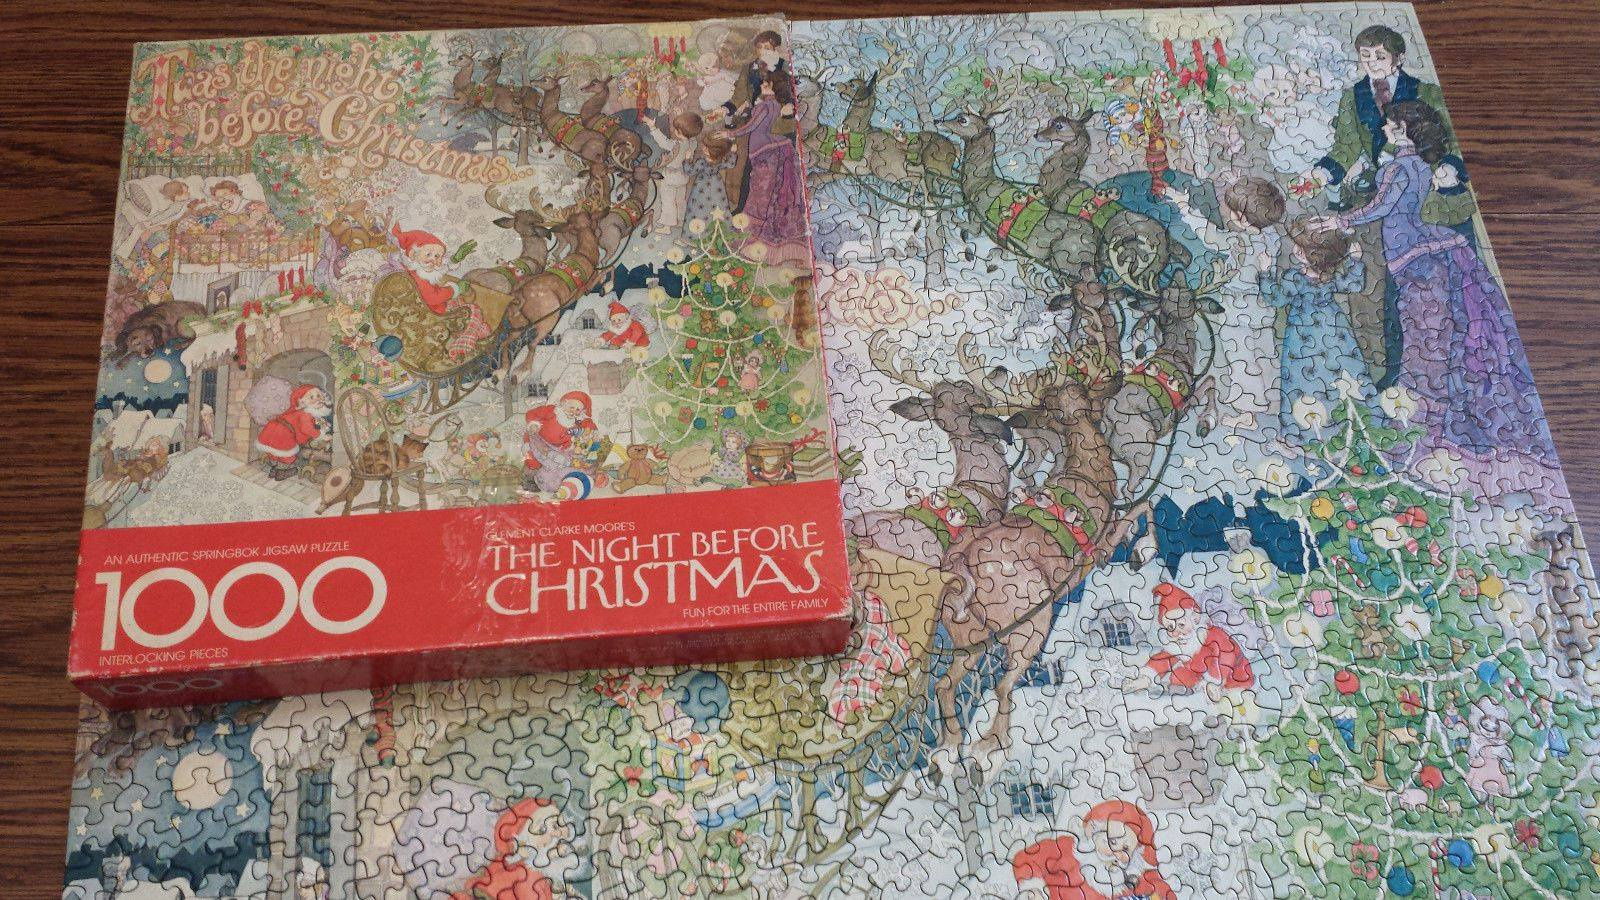 A completed Night Before Christmas puzzle.